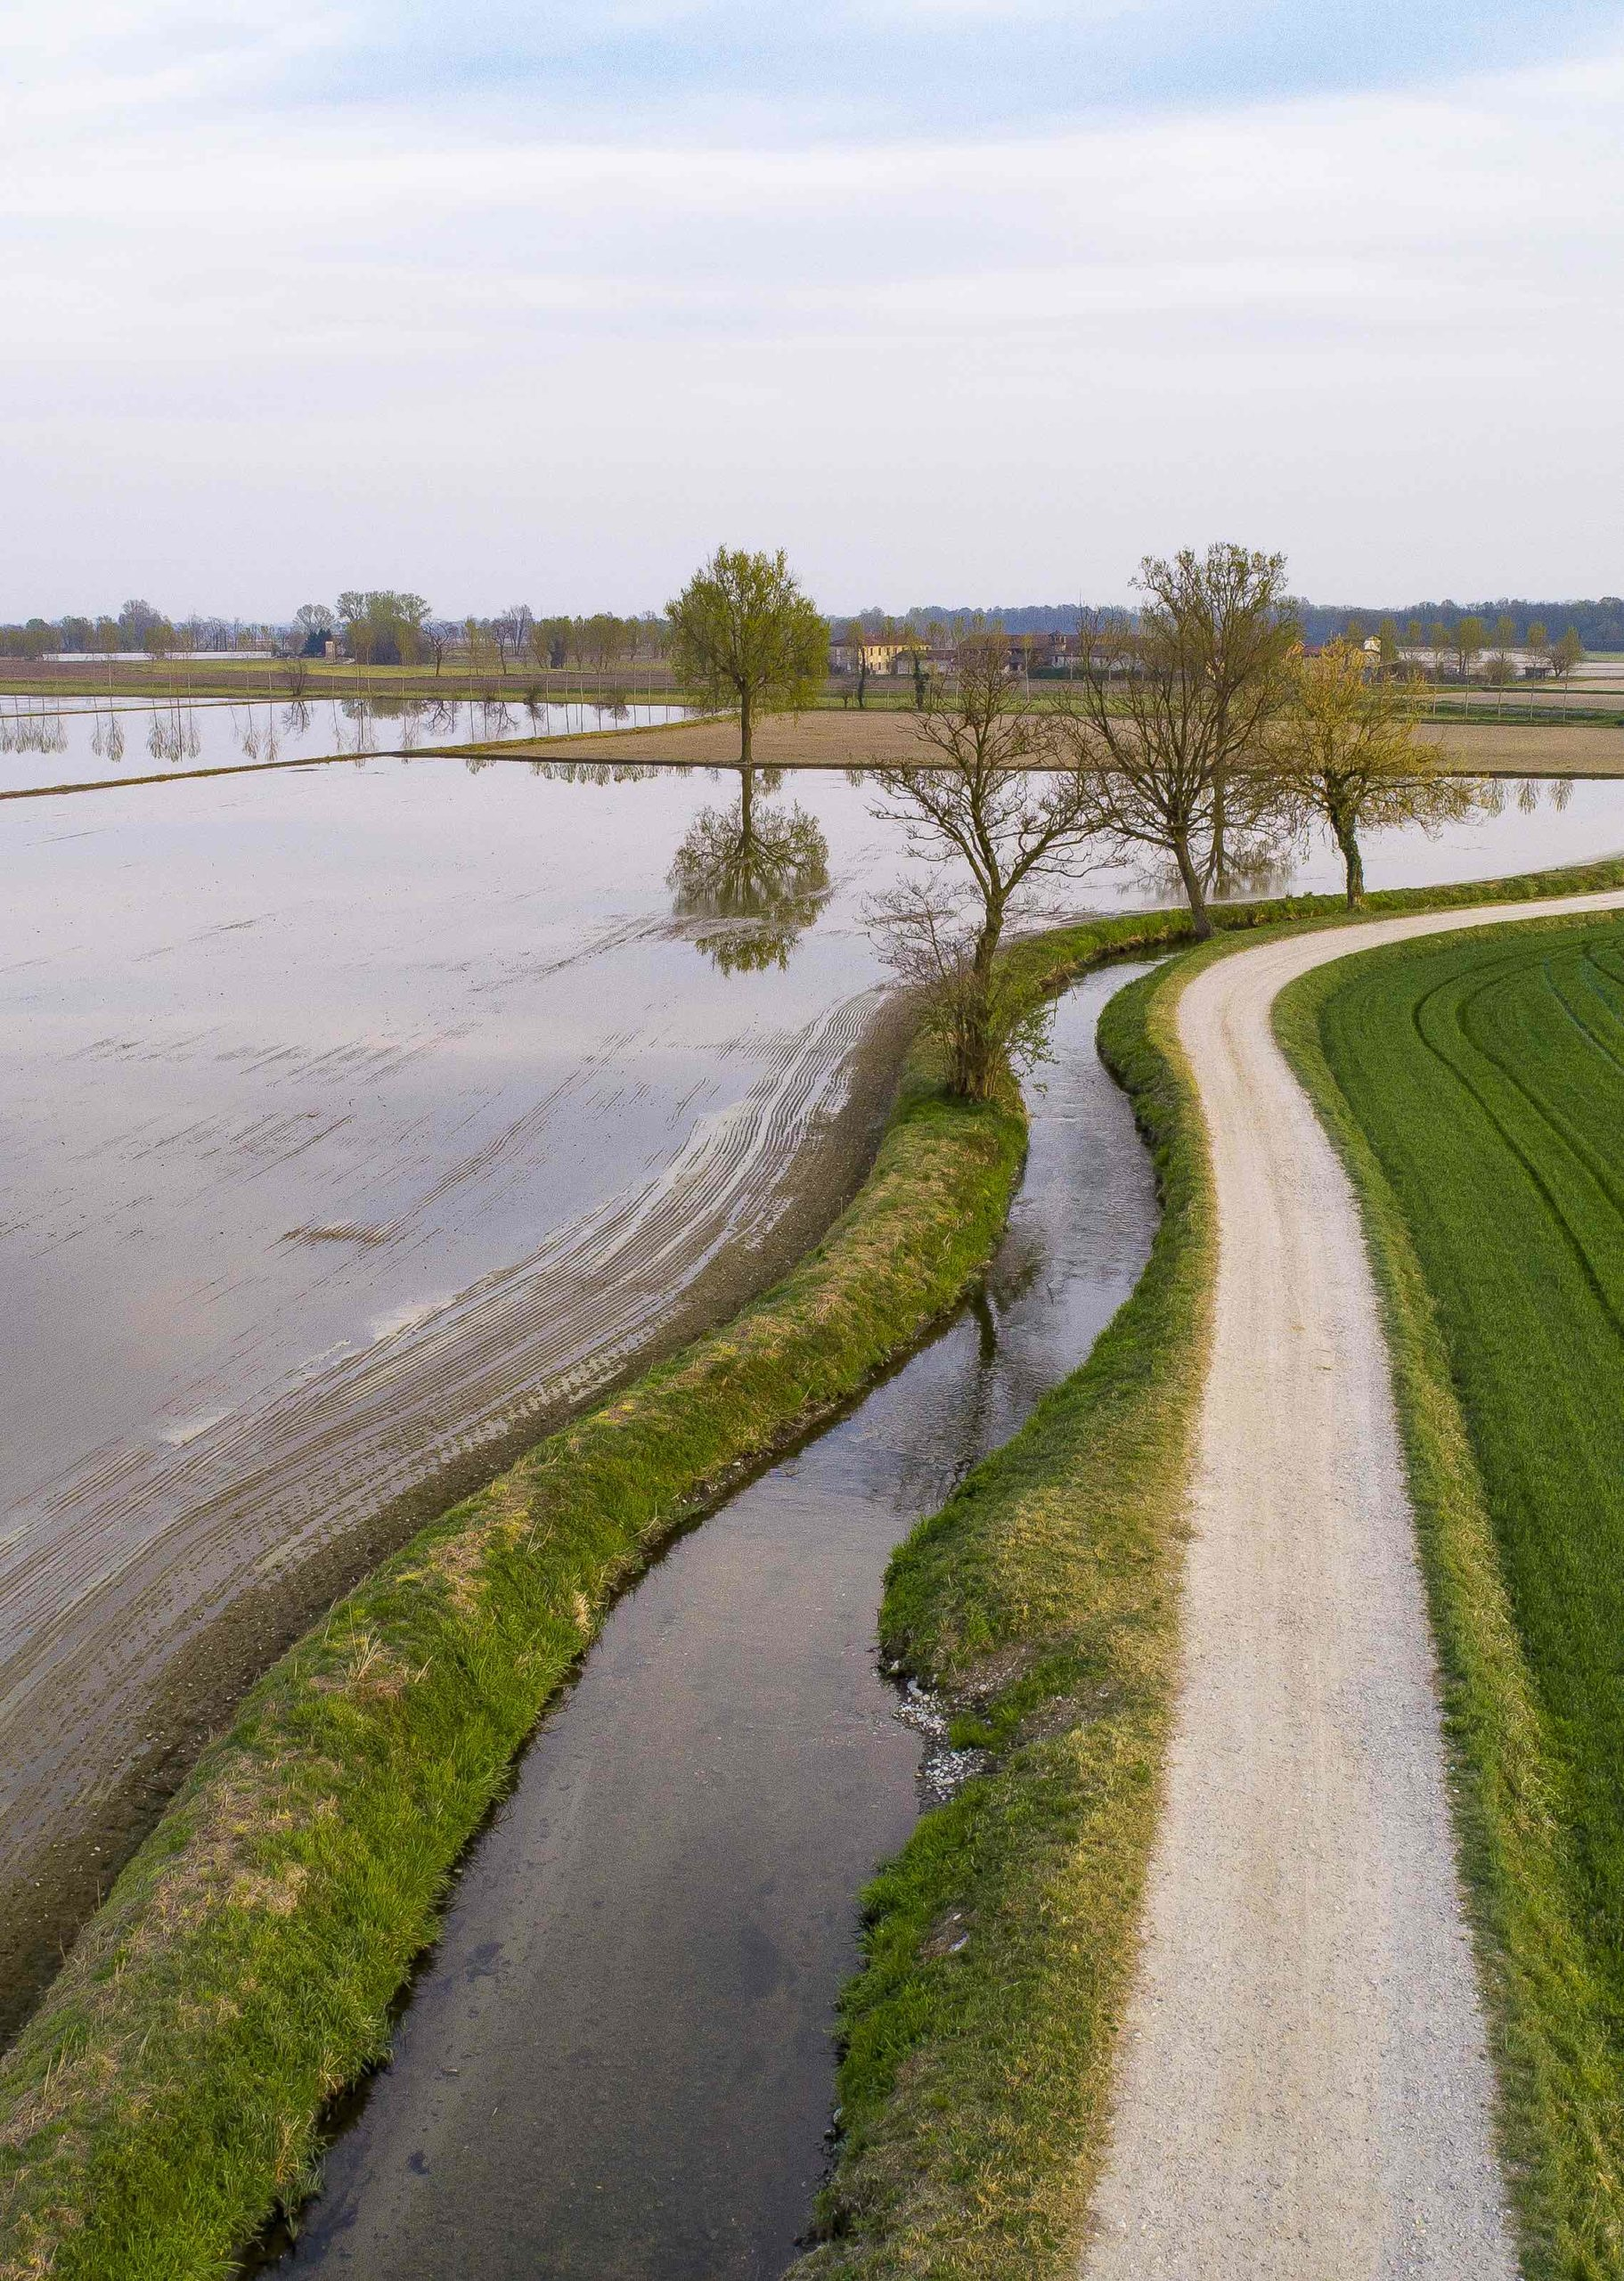 Flooded fields for rice cultivation in Lomellina, Italy. Panoramic aerial view. Typical countryside landscape of northern Italy with dirt roads, fields and ancient farms.